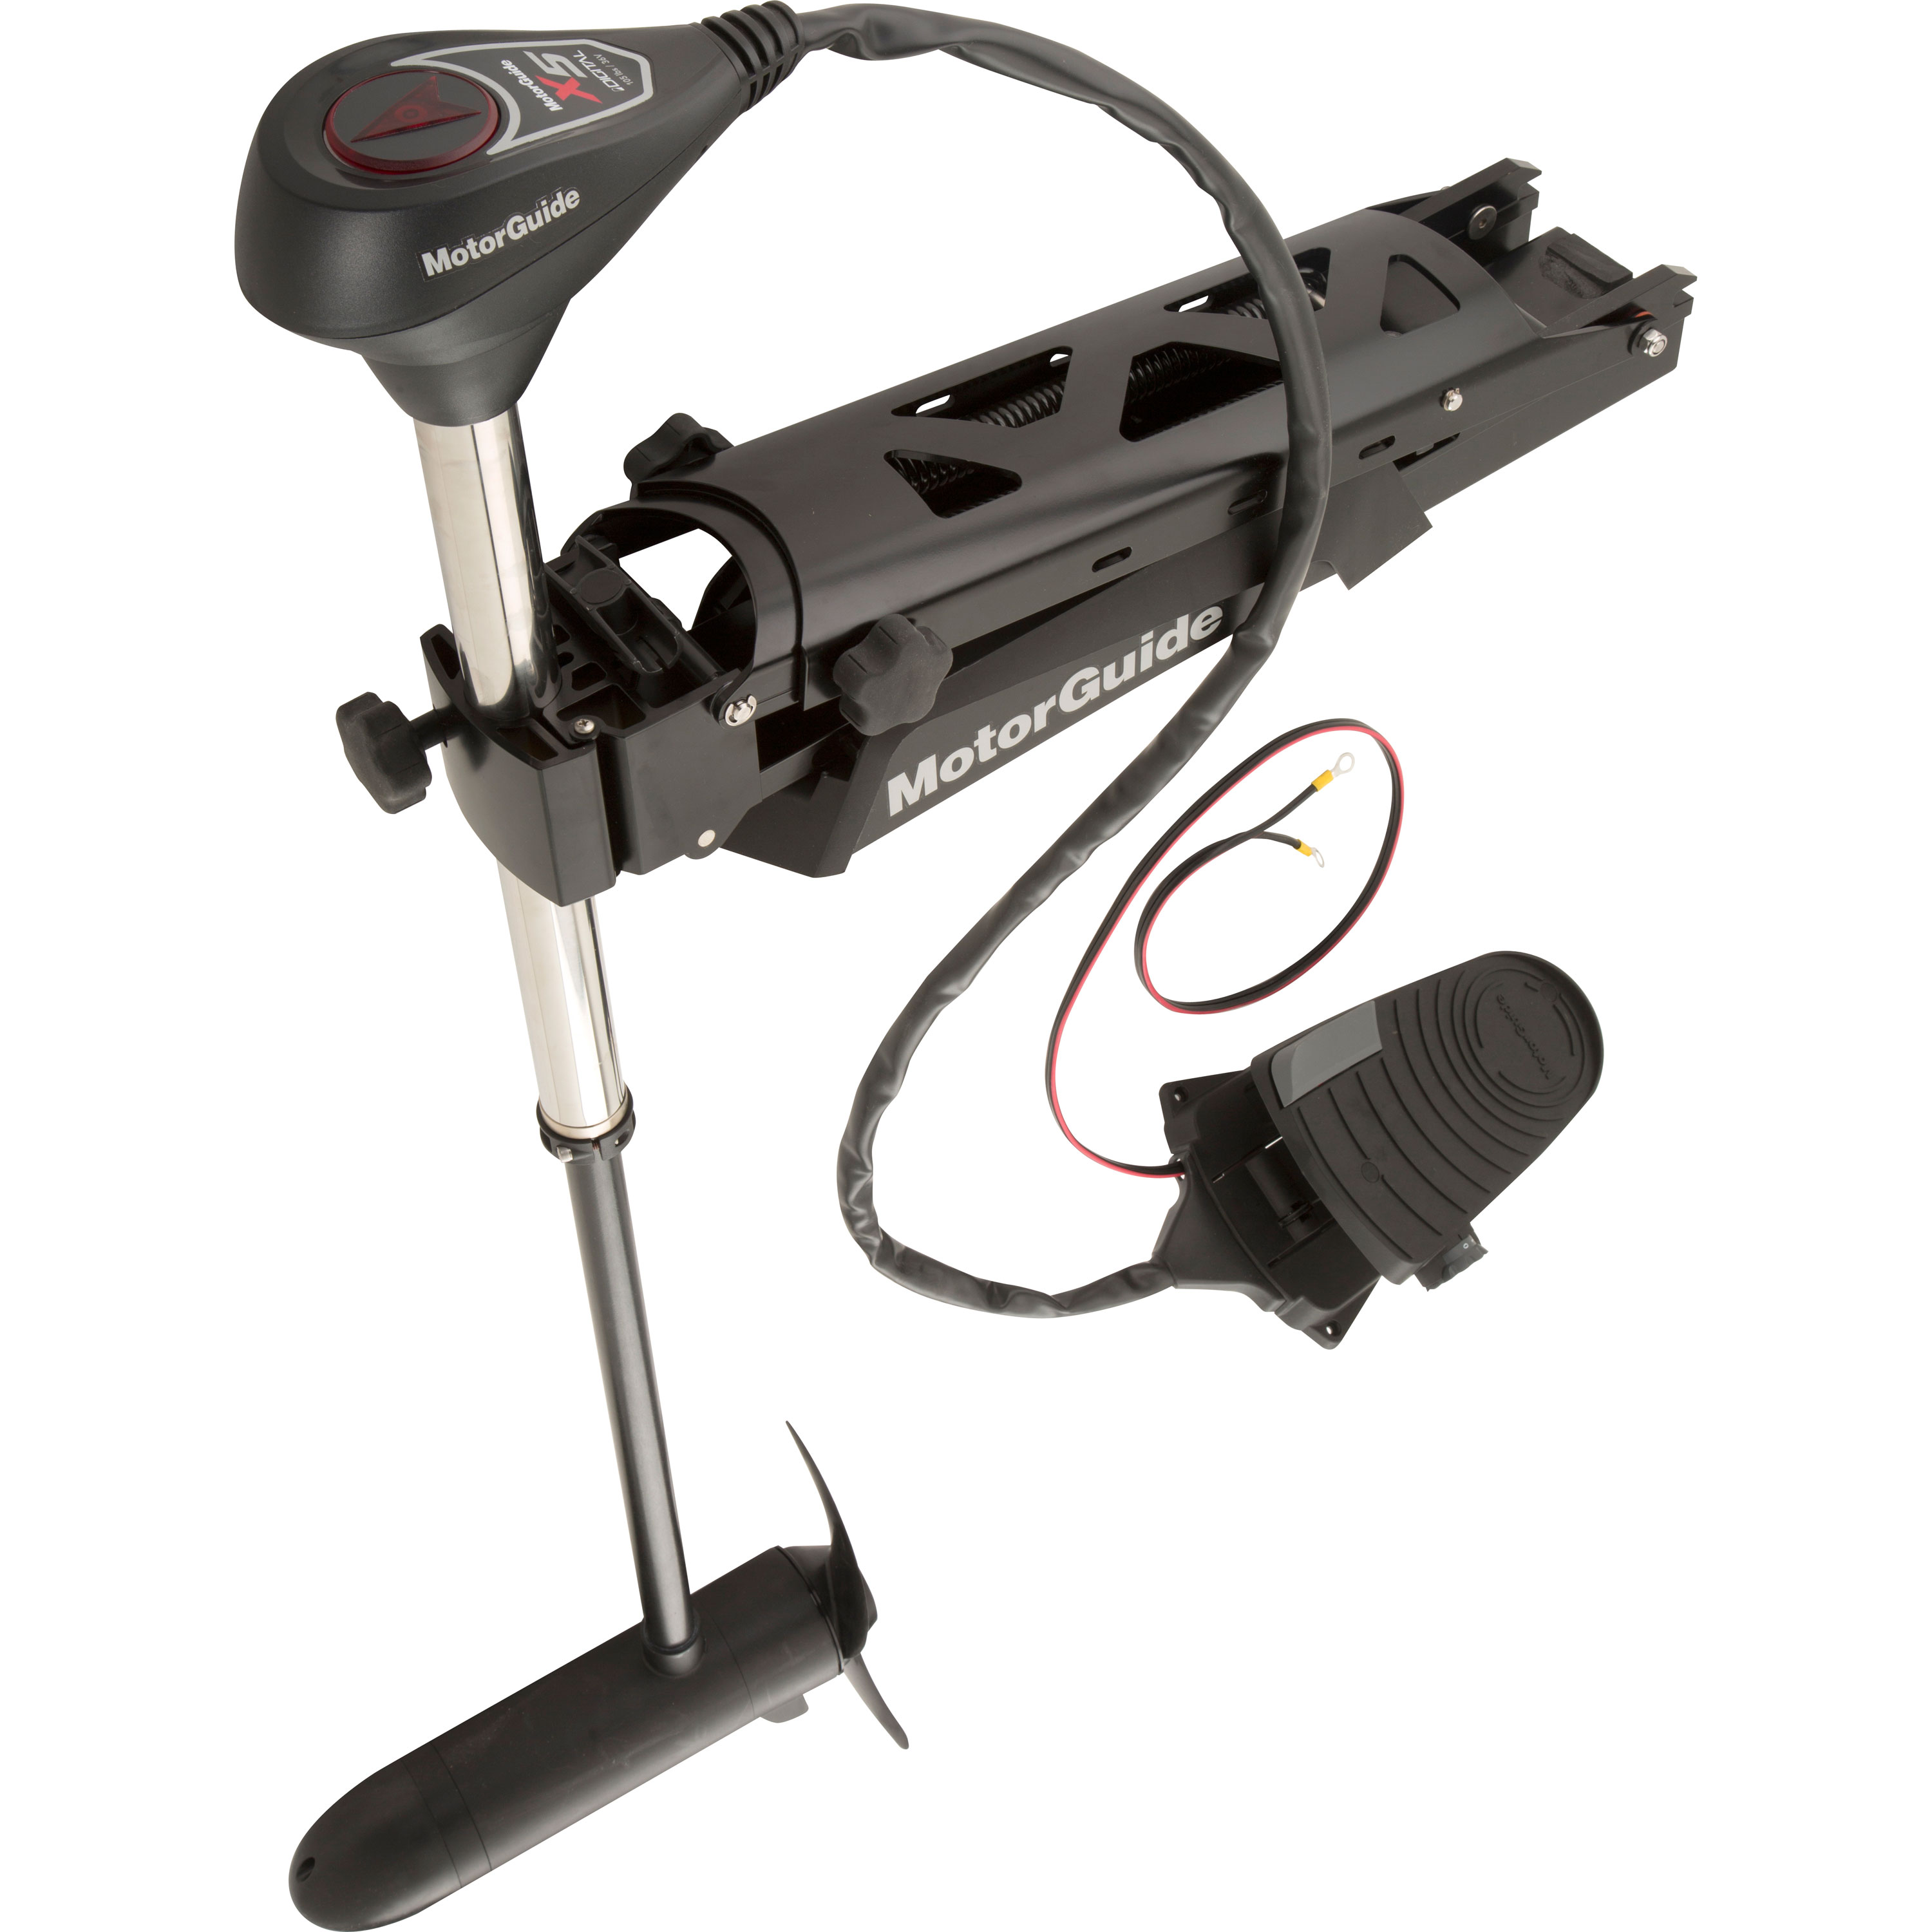 "Motorguide 940500080 Motorguide X5 55Fw 45"" 12V Sonar Foot-Operated"